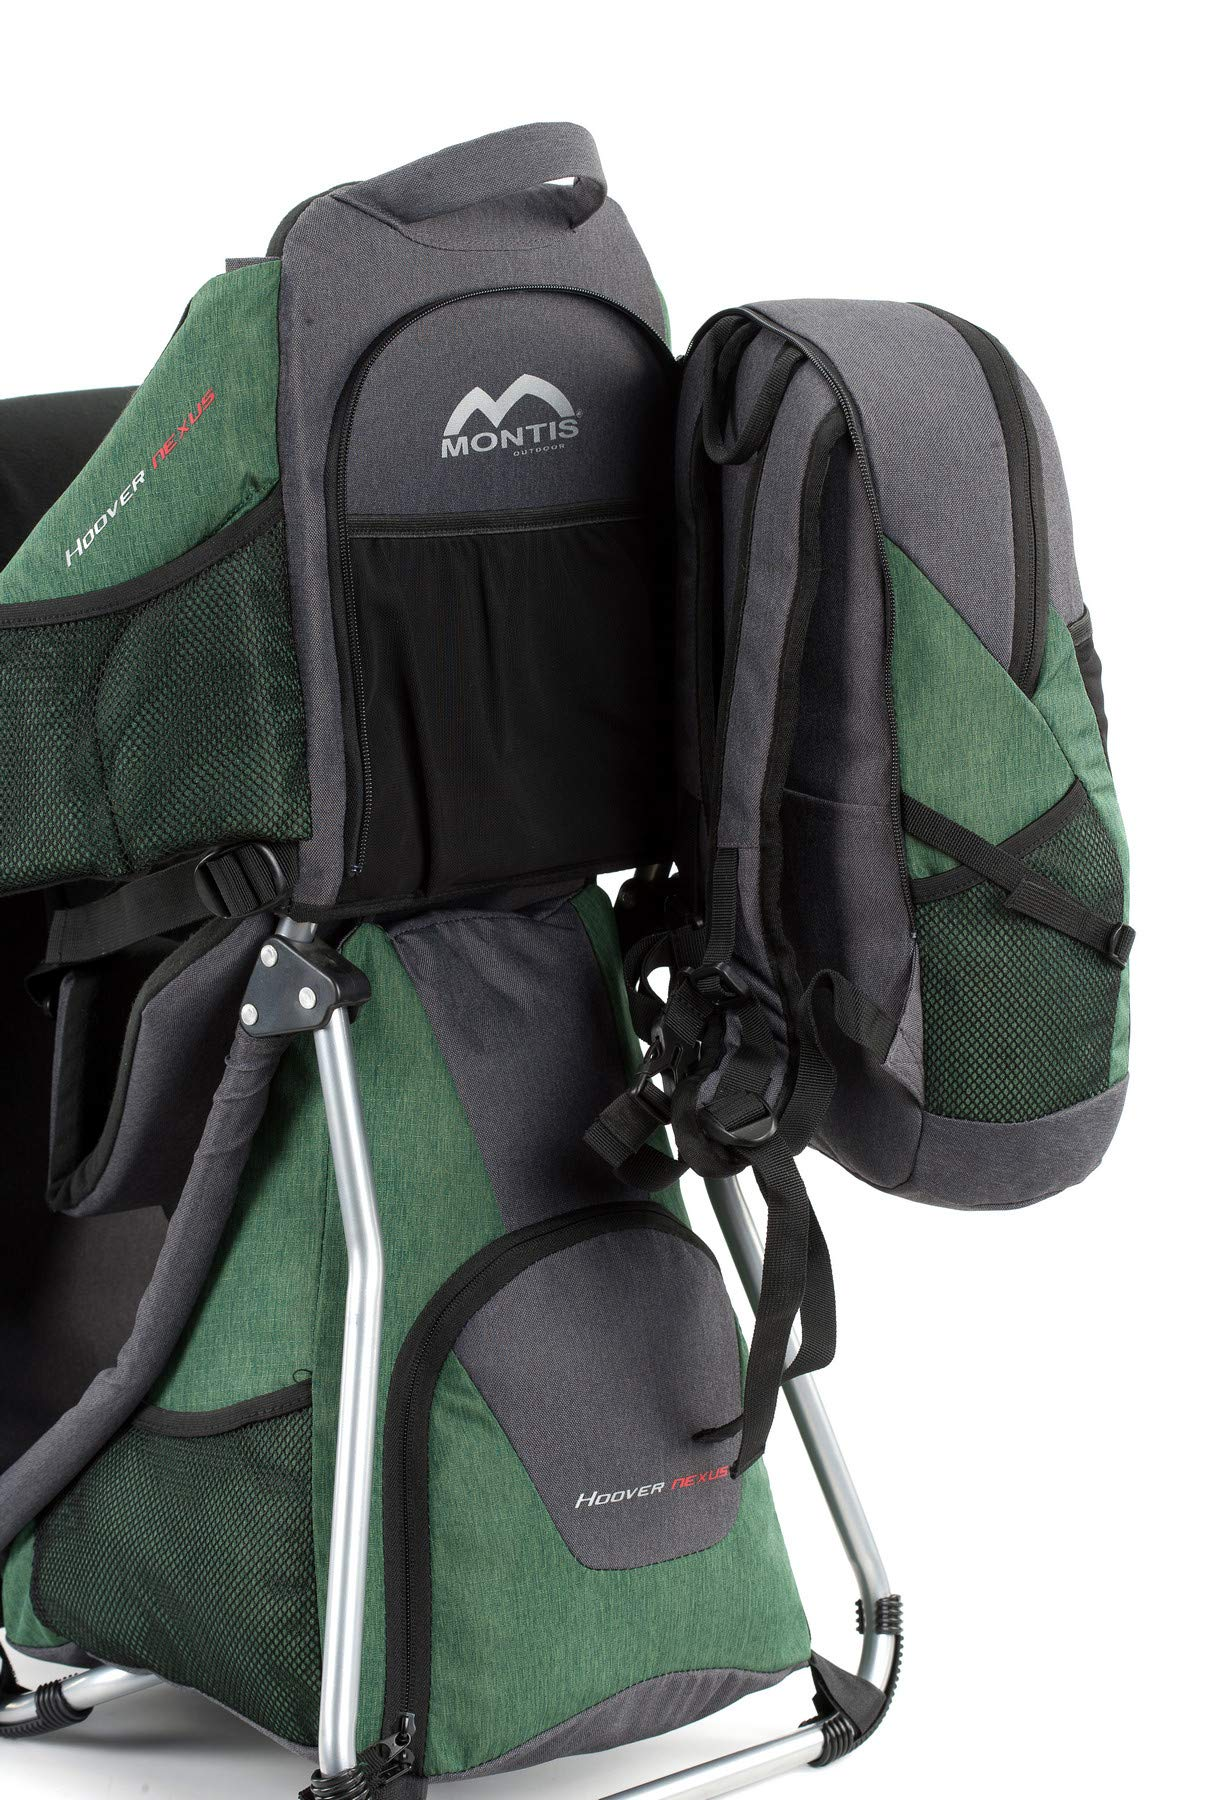 Montis HOOVER NEXUS, Child Hiking Backpack Carrier, suitable for babies & toddlers with a stable seat, low weight suitable, many extras, premium quality (GREEN) M MONTIS OUTDOOR ✅ SAFE - Practical baby carrier backpack completely adjustable with wide 5-point child harness for children weighing up to 25 kg instead of 20 kg. Thanks to height-adjustable seat cushions, padded side panels, a rear headrest, and forehead cushions, it is ideal for hiking in the city or in the country. With reflective elements on the front and back for night protection. ✅ COMFORTABLE - Suitable for both parents thanks to adjustable shoulder straps, a 14 cm adjustable chest strap with a vertical position for women's ergonomics, and reinforced back area (incl. ventilation system) with load distribution to the pelvic belts. We use materials of the highest quality and focus on flawless manufacturing. ✅ SPACIOUS - Removable additional backpack 10L and seat pocket with 18L volume provide the carrier with additional storage space for water bottles, rain protection, sun protection, changing mat and much more. In addition, the straps of the baby carrier are equipped with small quick-access pockets to avoid the need of constantly taking off the carrier. 7